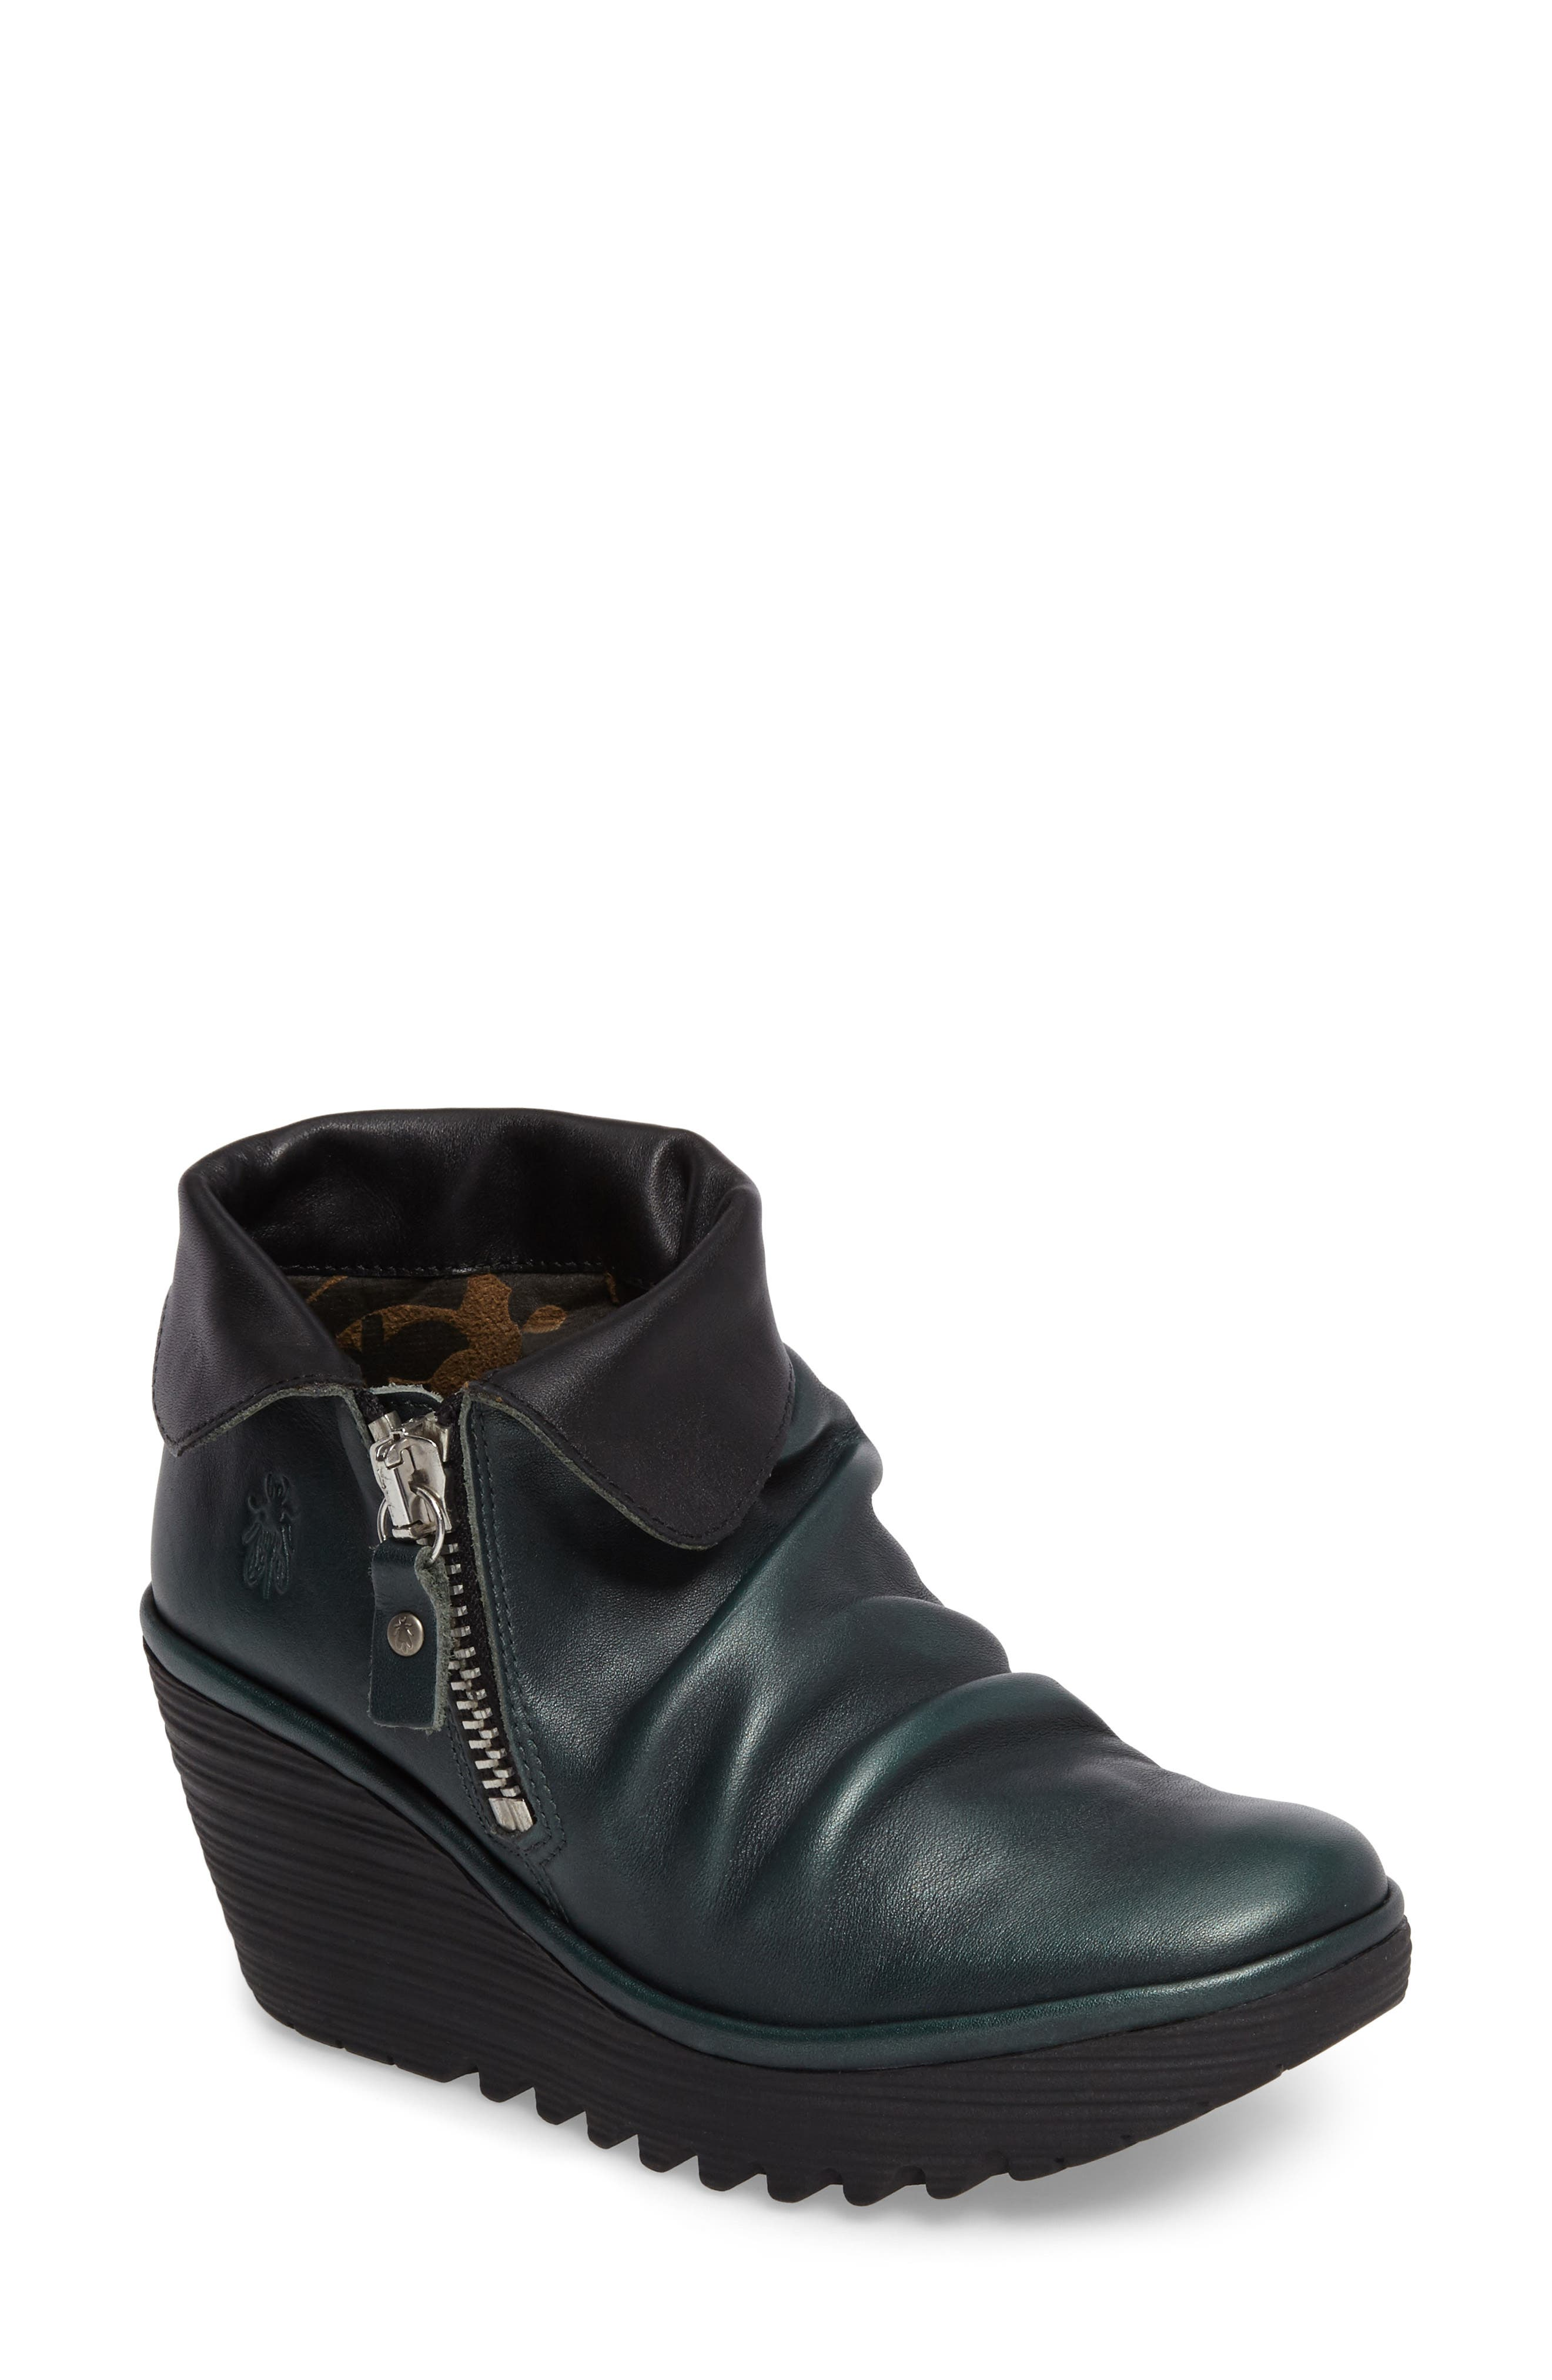 Fly London Yoxi Wedge Bootie (Women)